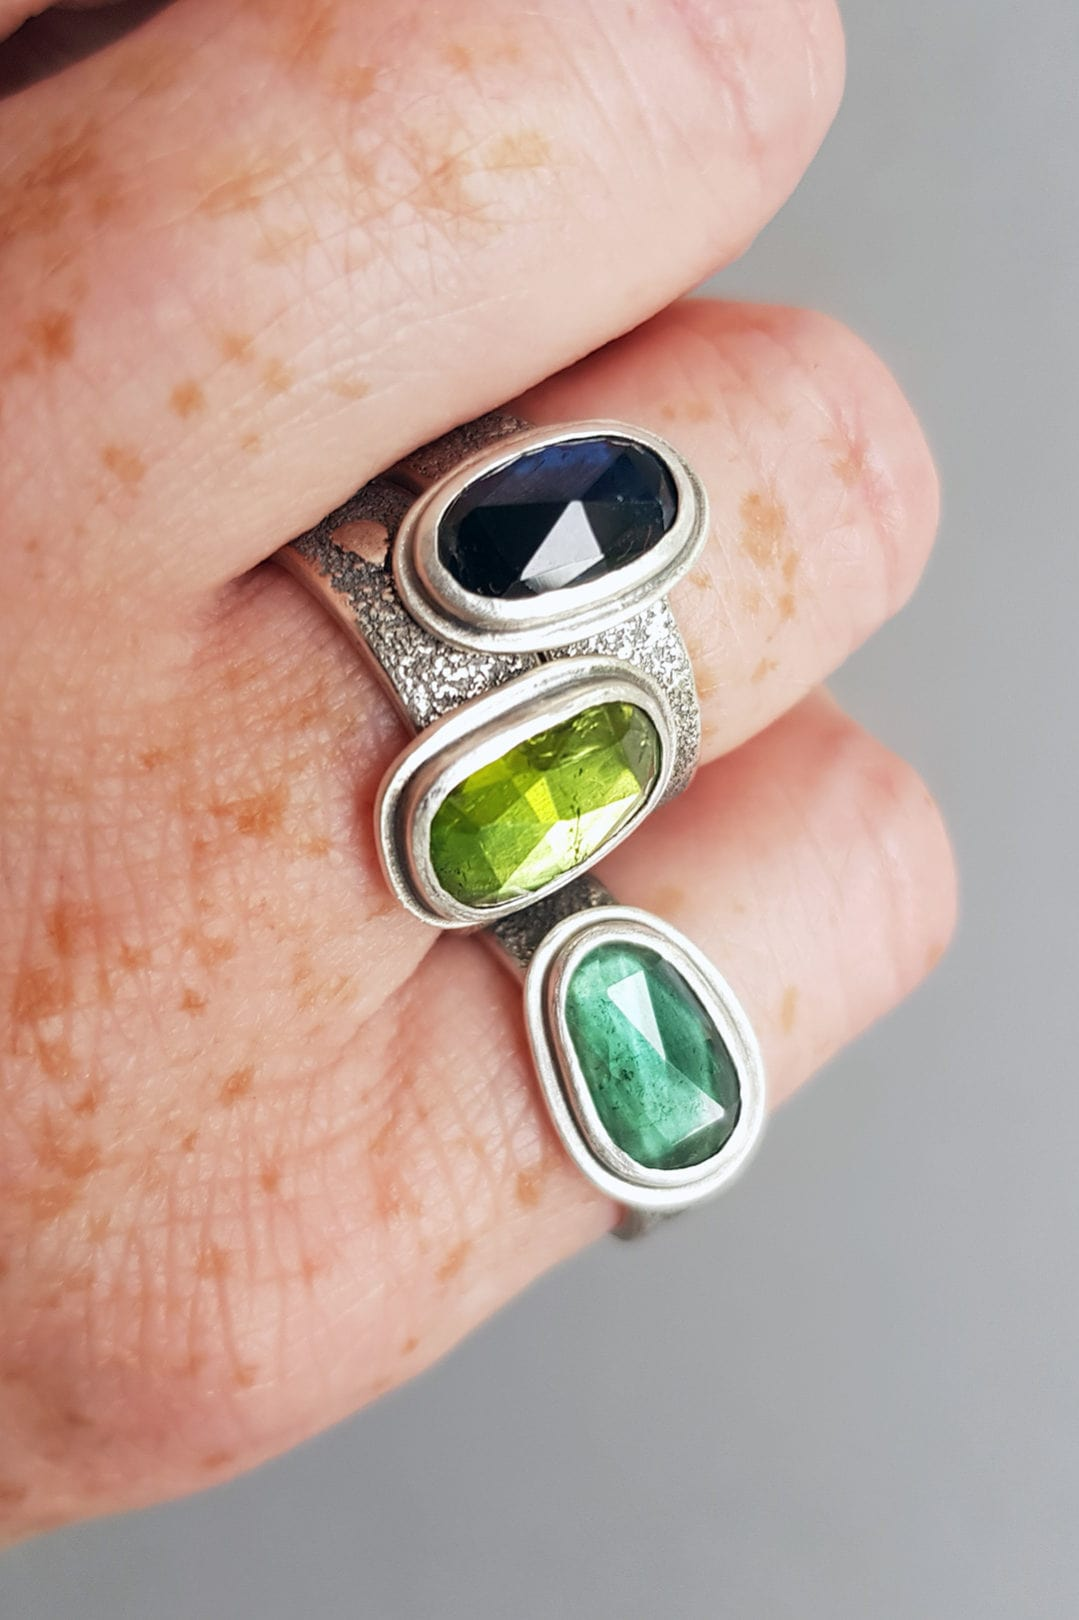 Green and blue tourmaline rings in textured silver on hand